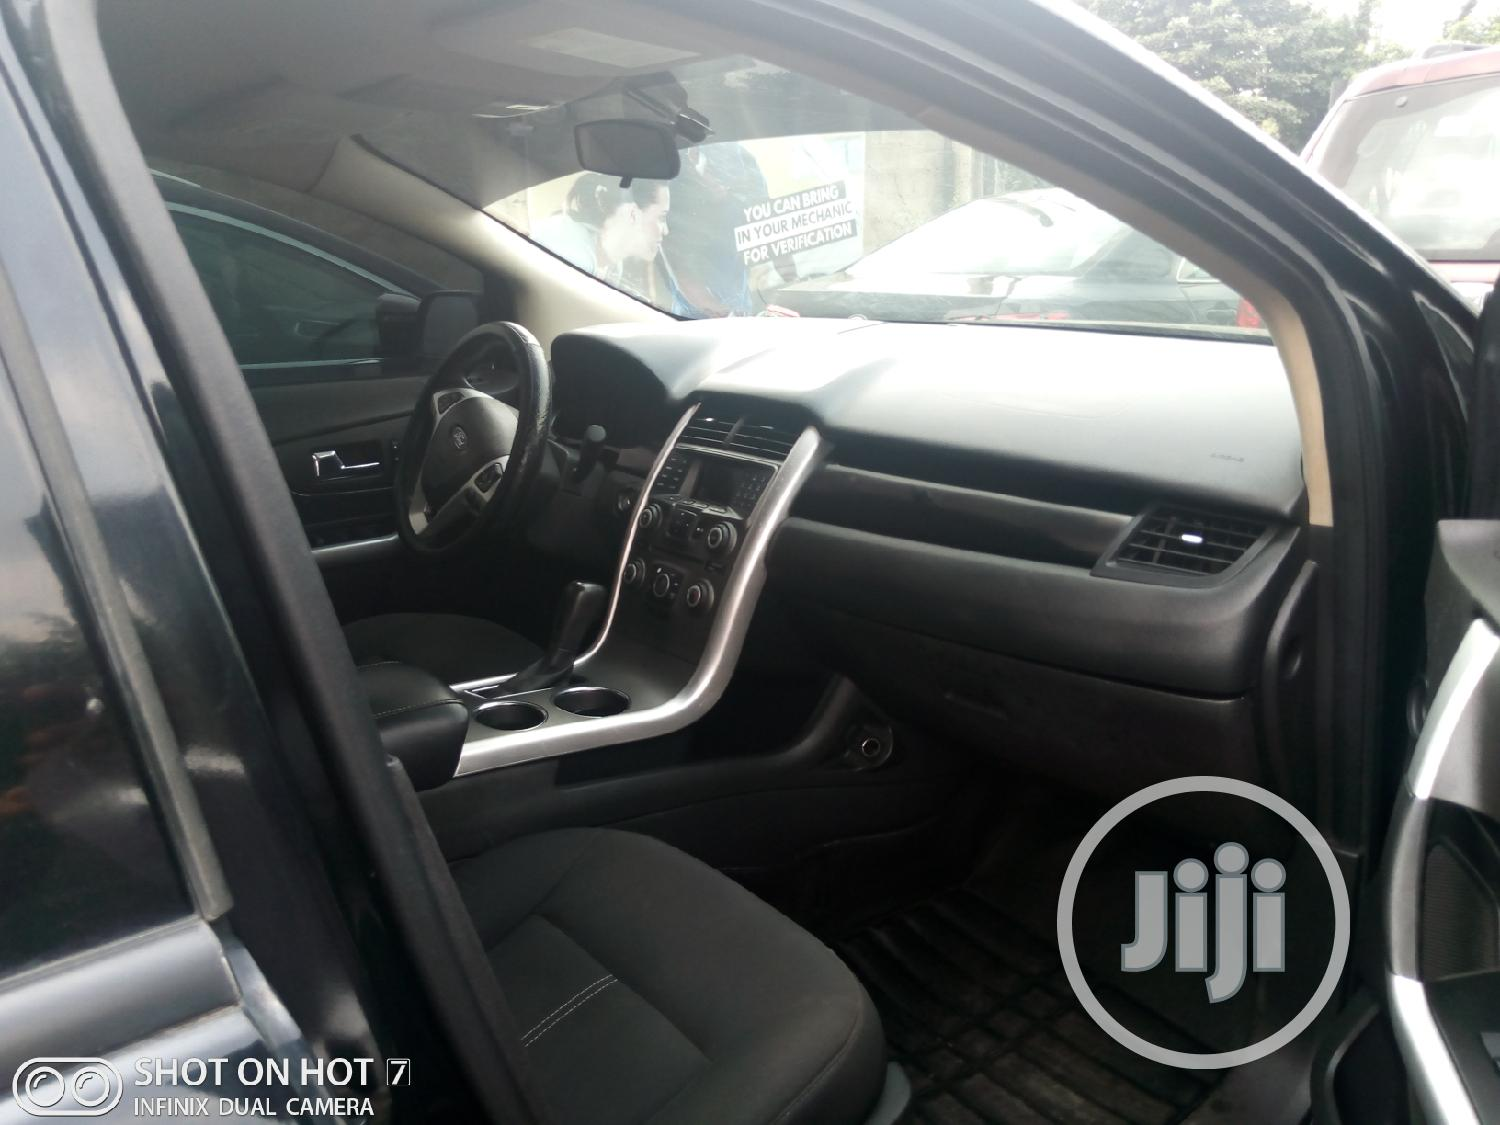 Archive: Ford Edge 2012 SE 4dr FWD (3.5L 6cyl 6A) Black